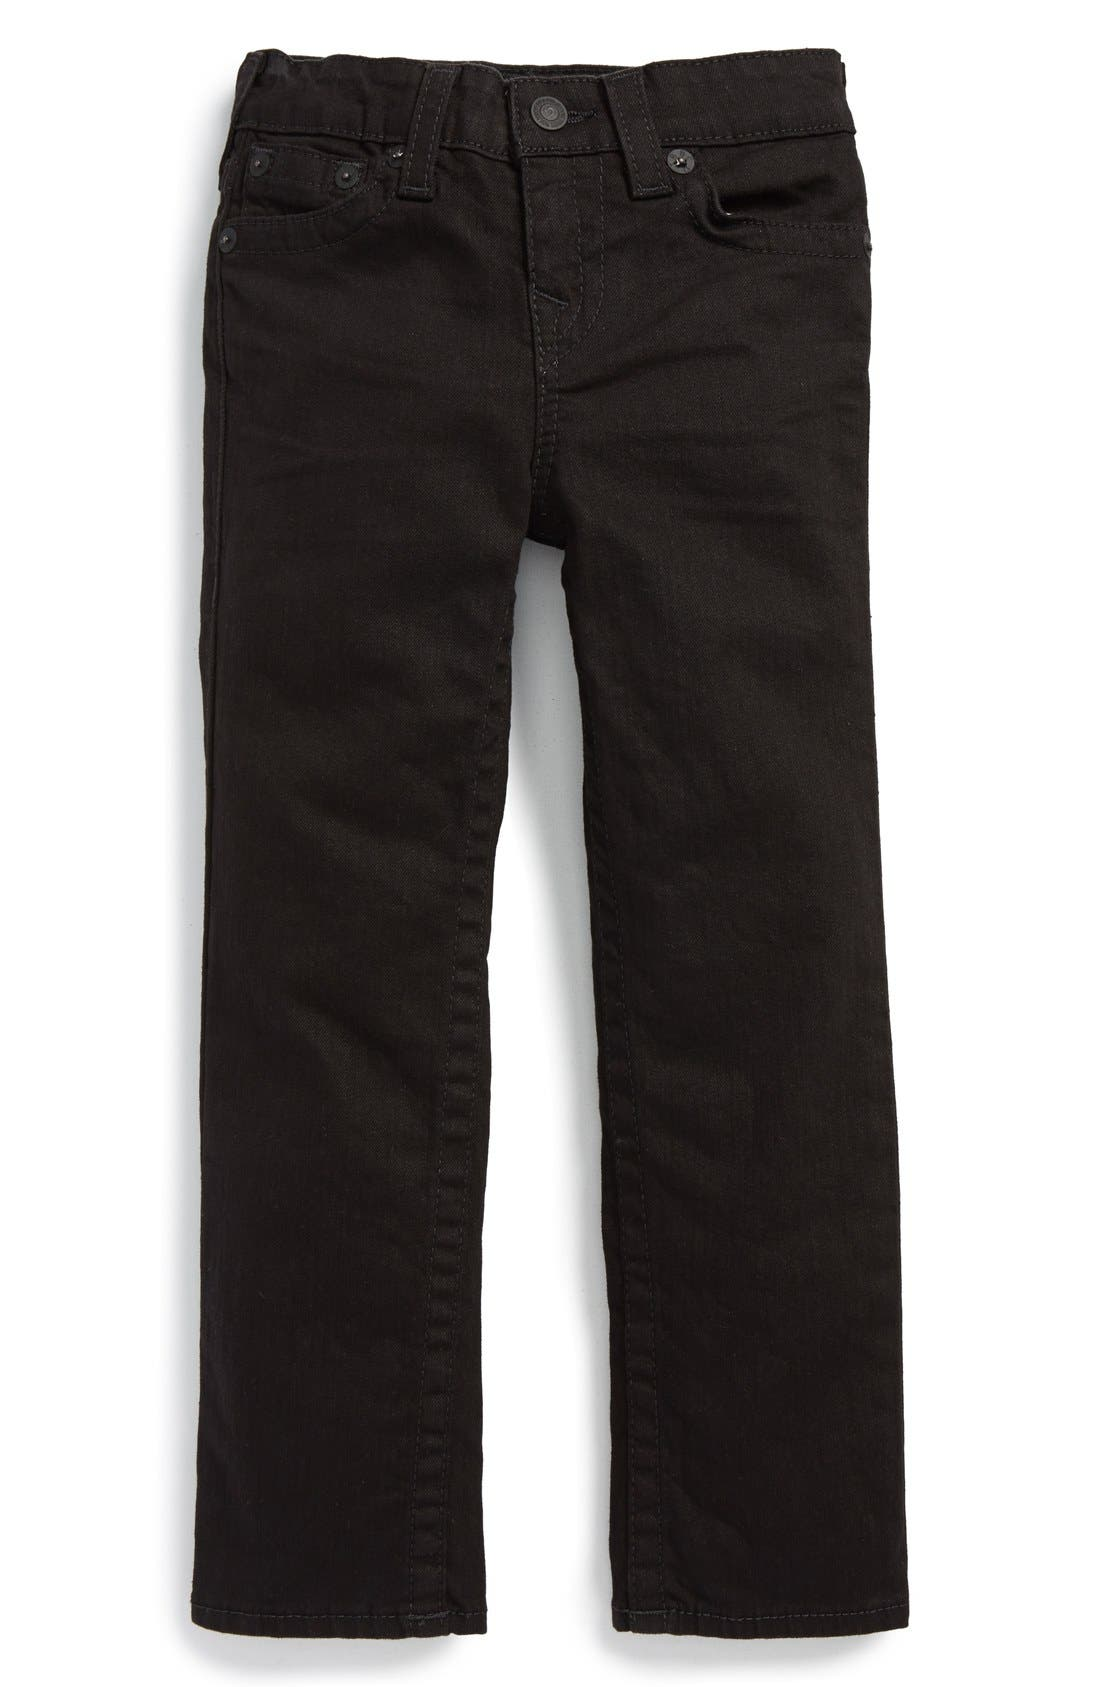 Alternate Image 1 Selected - True Religion Brand Jeans 'Geno' Relaxed Slim Fit Jeans (Toddler Boys & Little Boys)